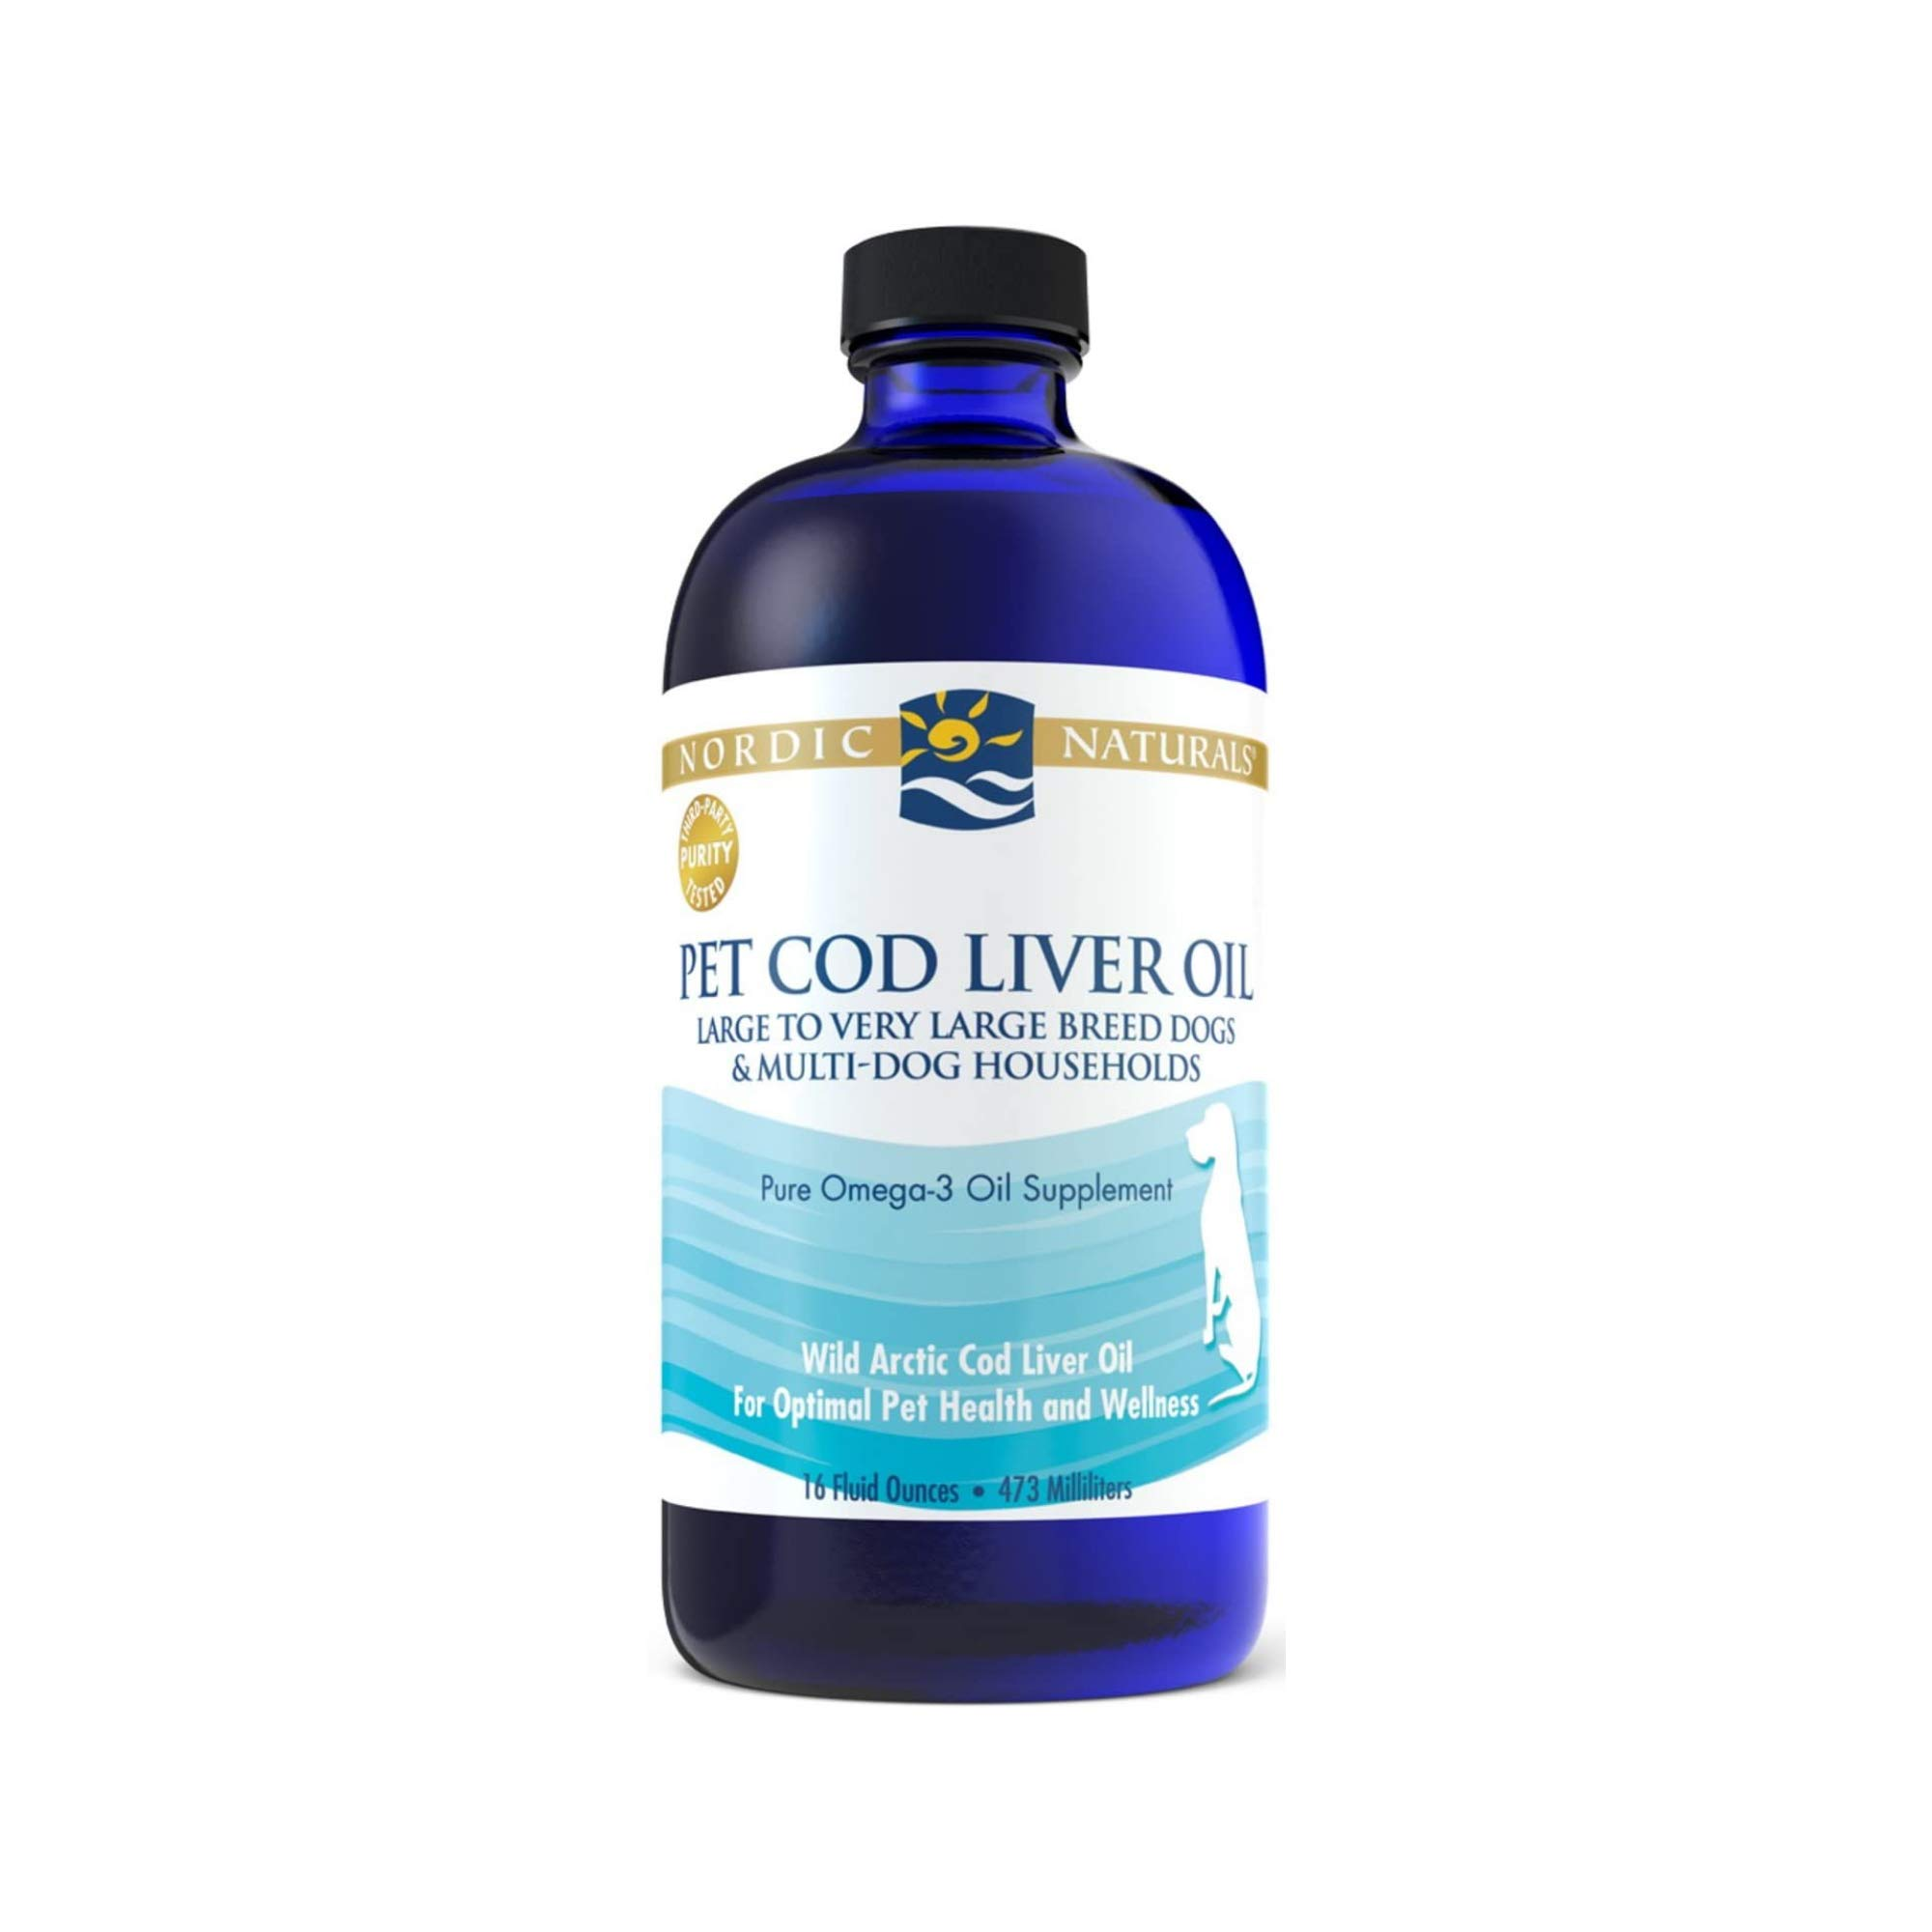 Nordic Naturals Pet CLO Supplement - Cod Liver Oil Omega 3s, DHA, EPA, Promotes Skin, Coat, Joint and Heart Health and Vitamin A for Vision, Fetal Development and Wellness